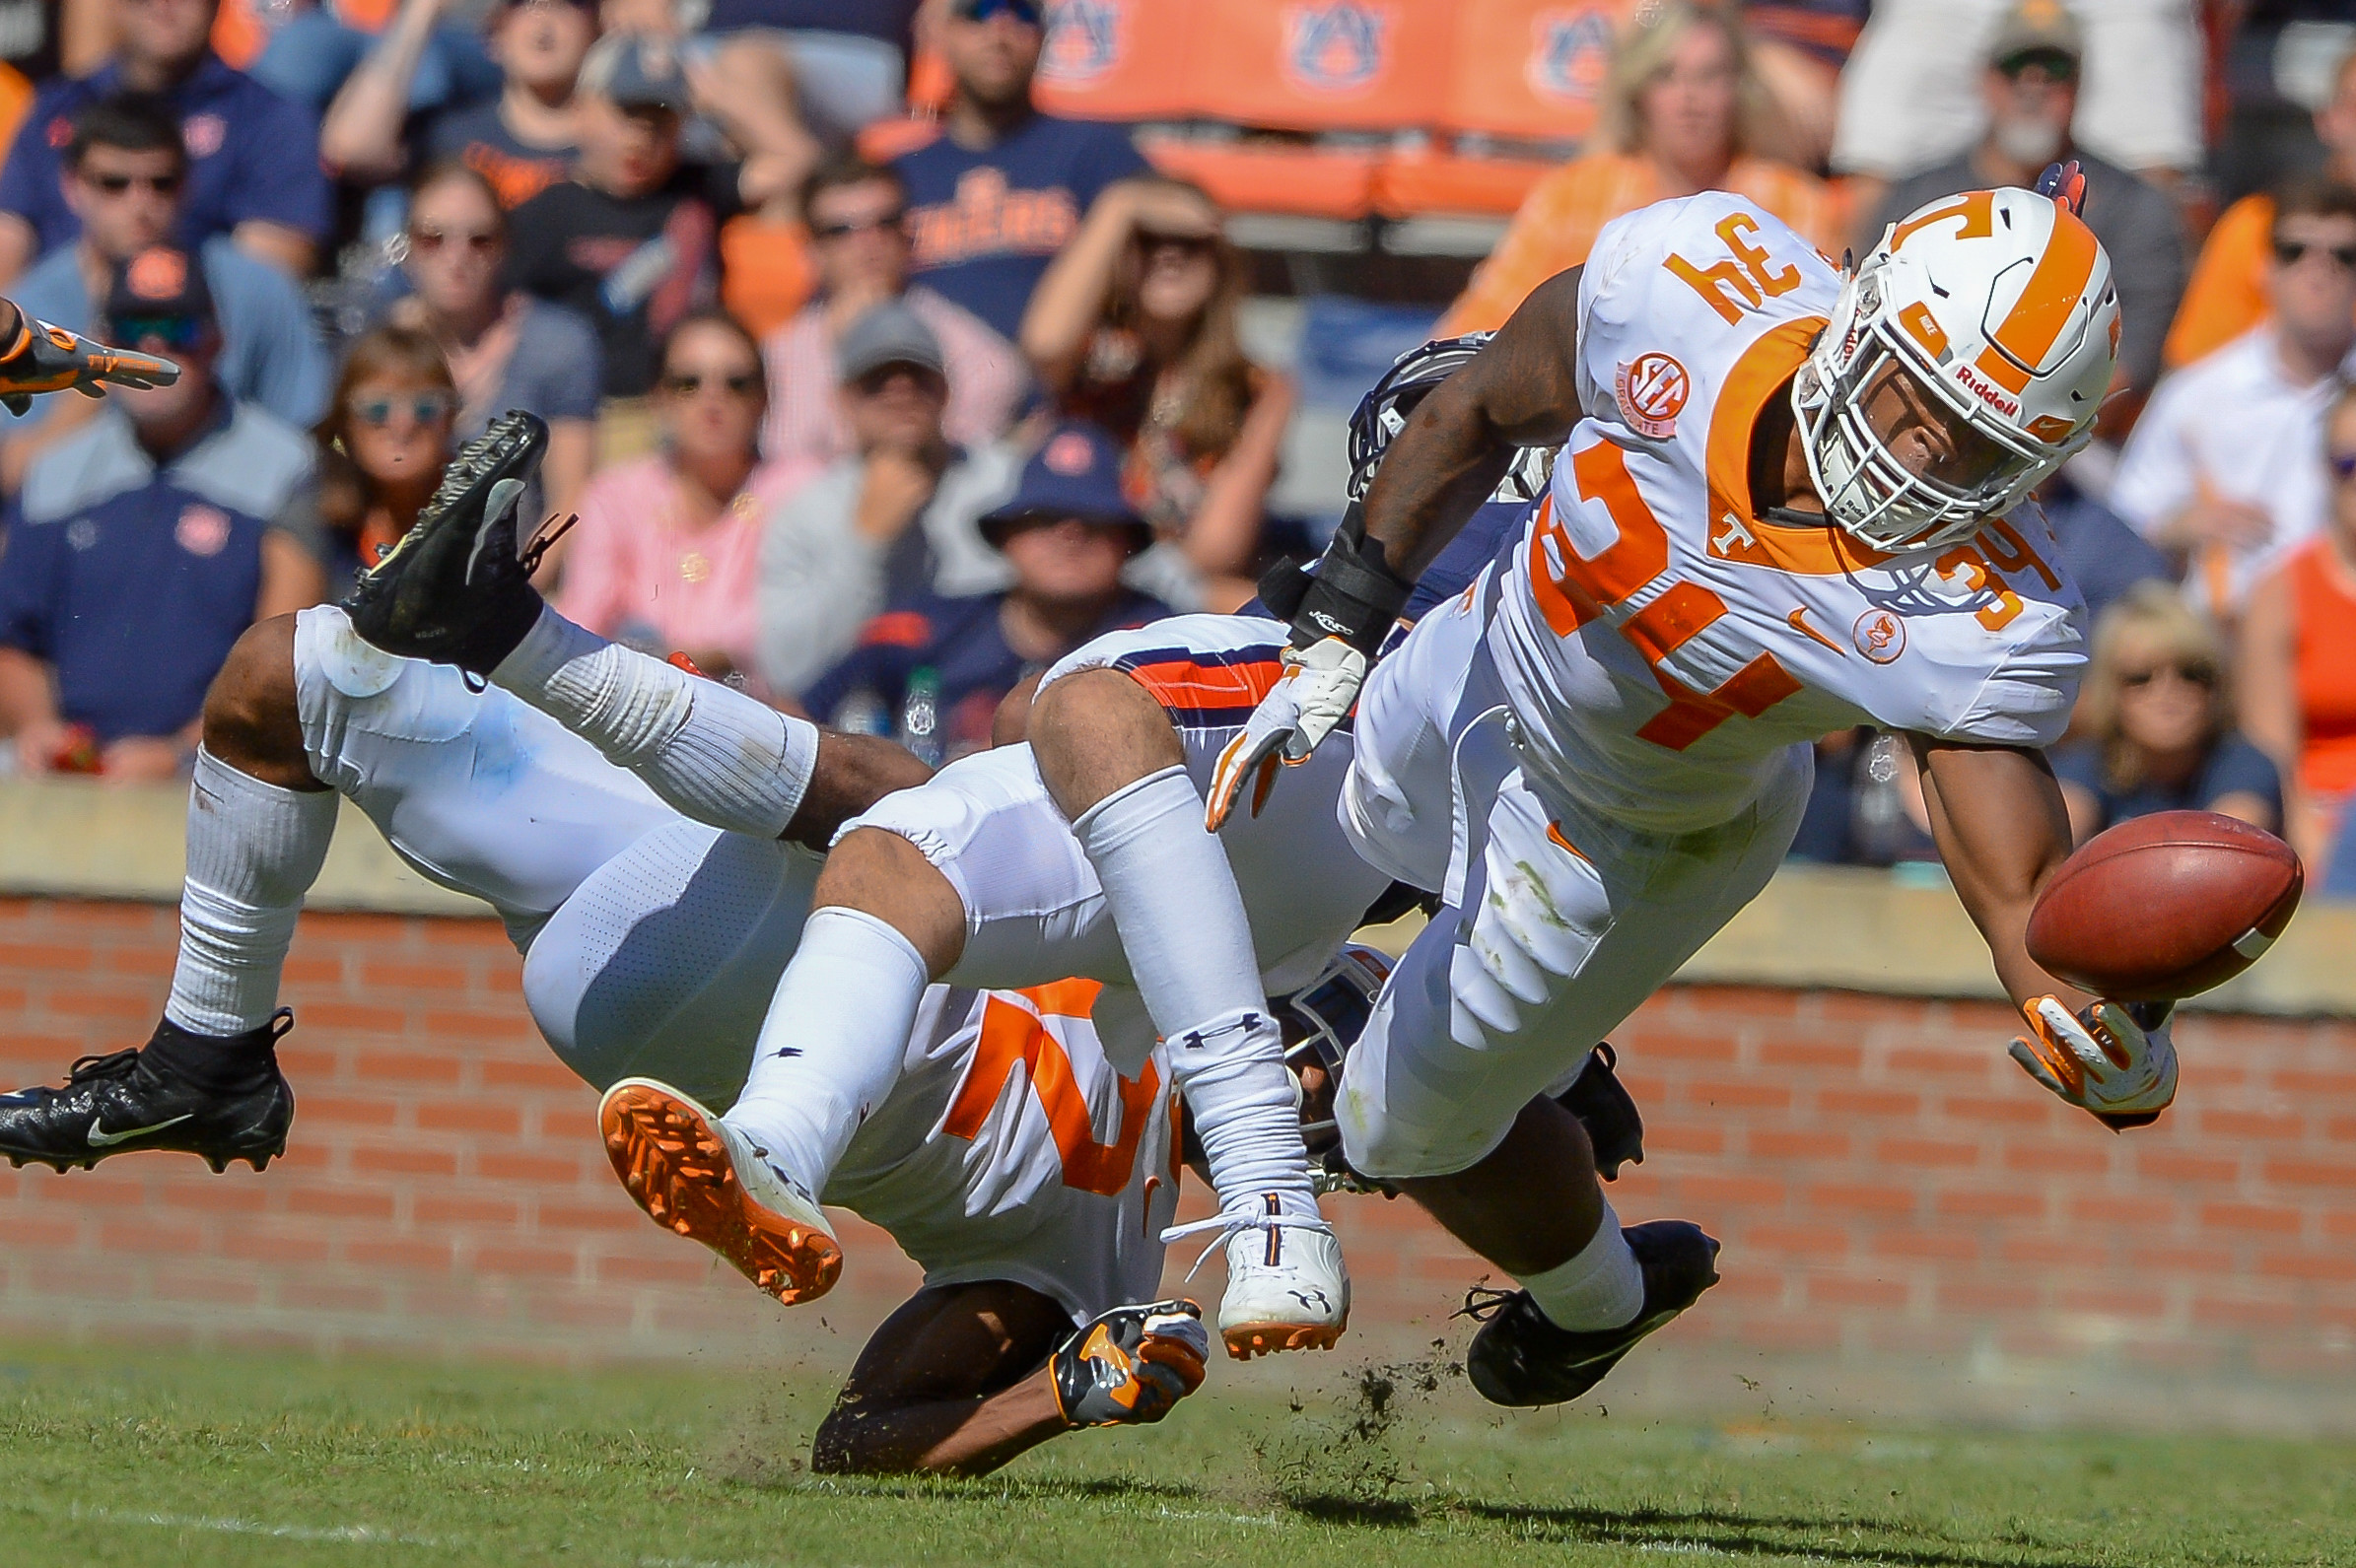 Tennessee Volunteers linebacker Darrin Kirkland Jr. (34) tries to catch a deflected pass during the second half of Saturday's game, at Jordan-Hare Stadium in Auburn, AL. Daily Mountain Eagle -  Jeff Johnsey